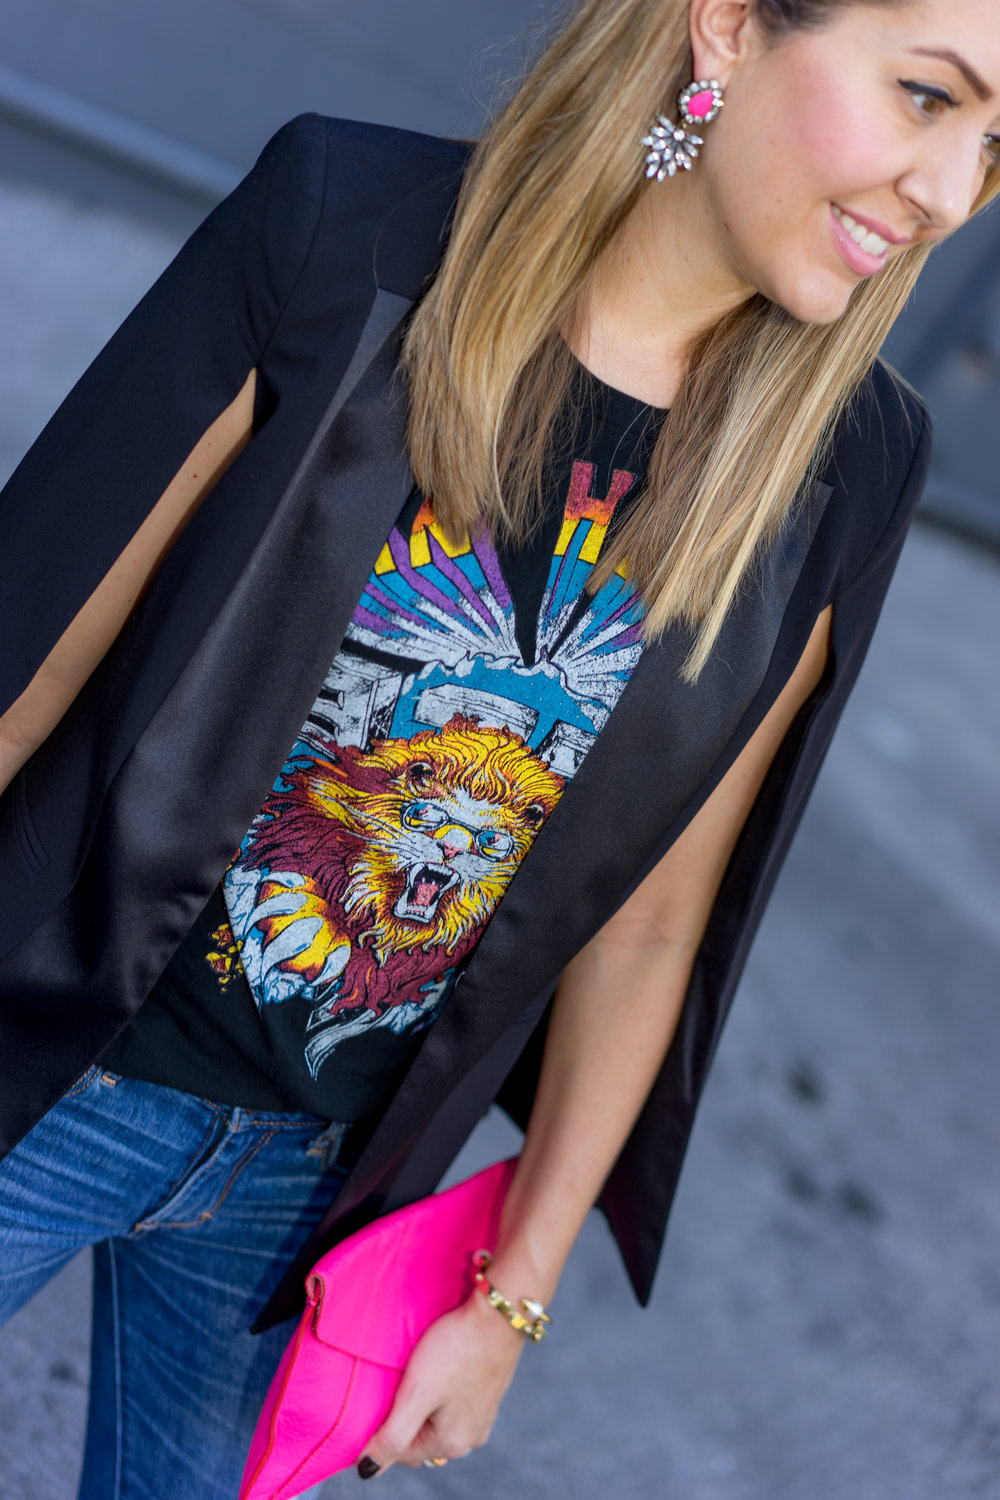 Pink earrings, cape blazer, concert tee